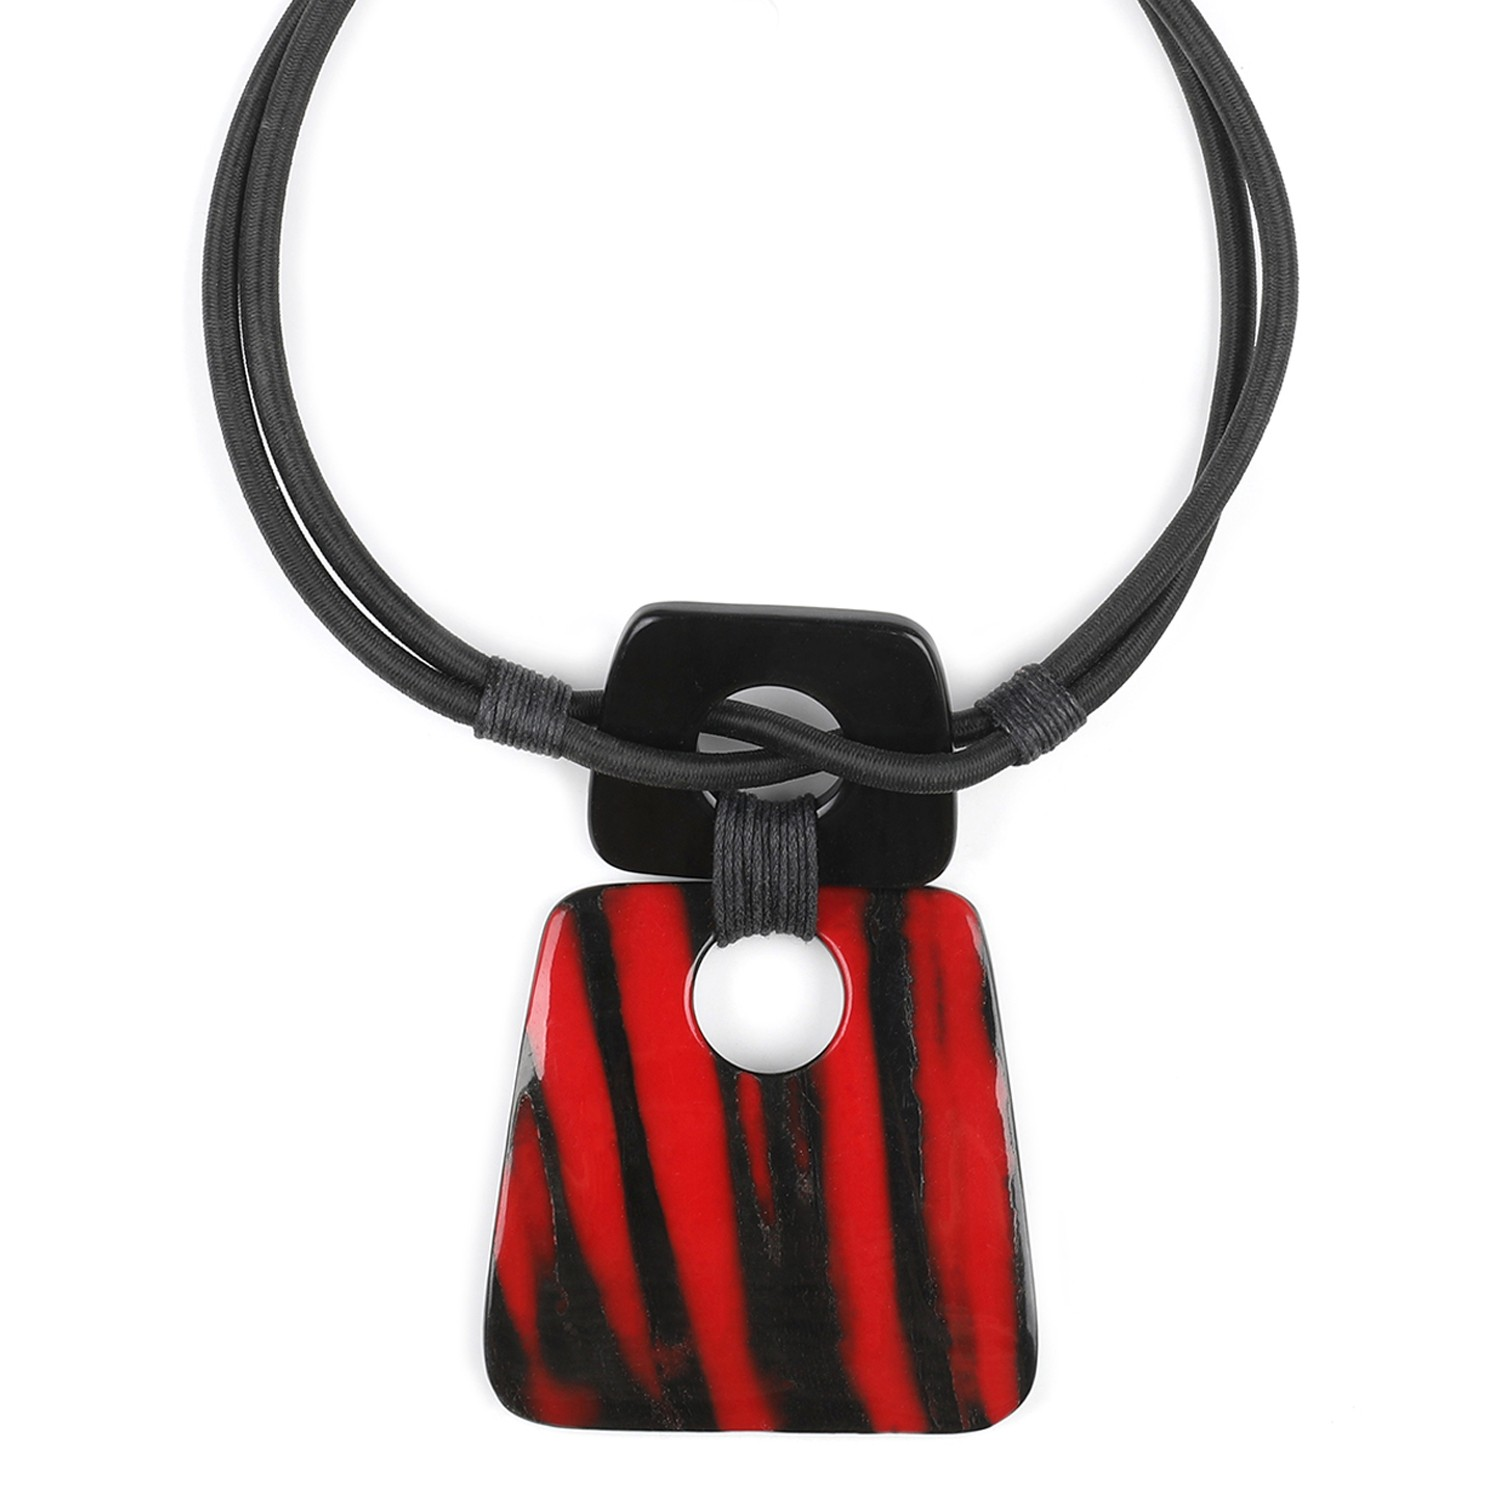 MAGMA 2 cord necklace